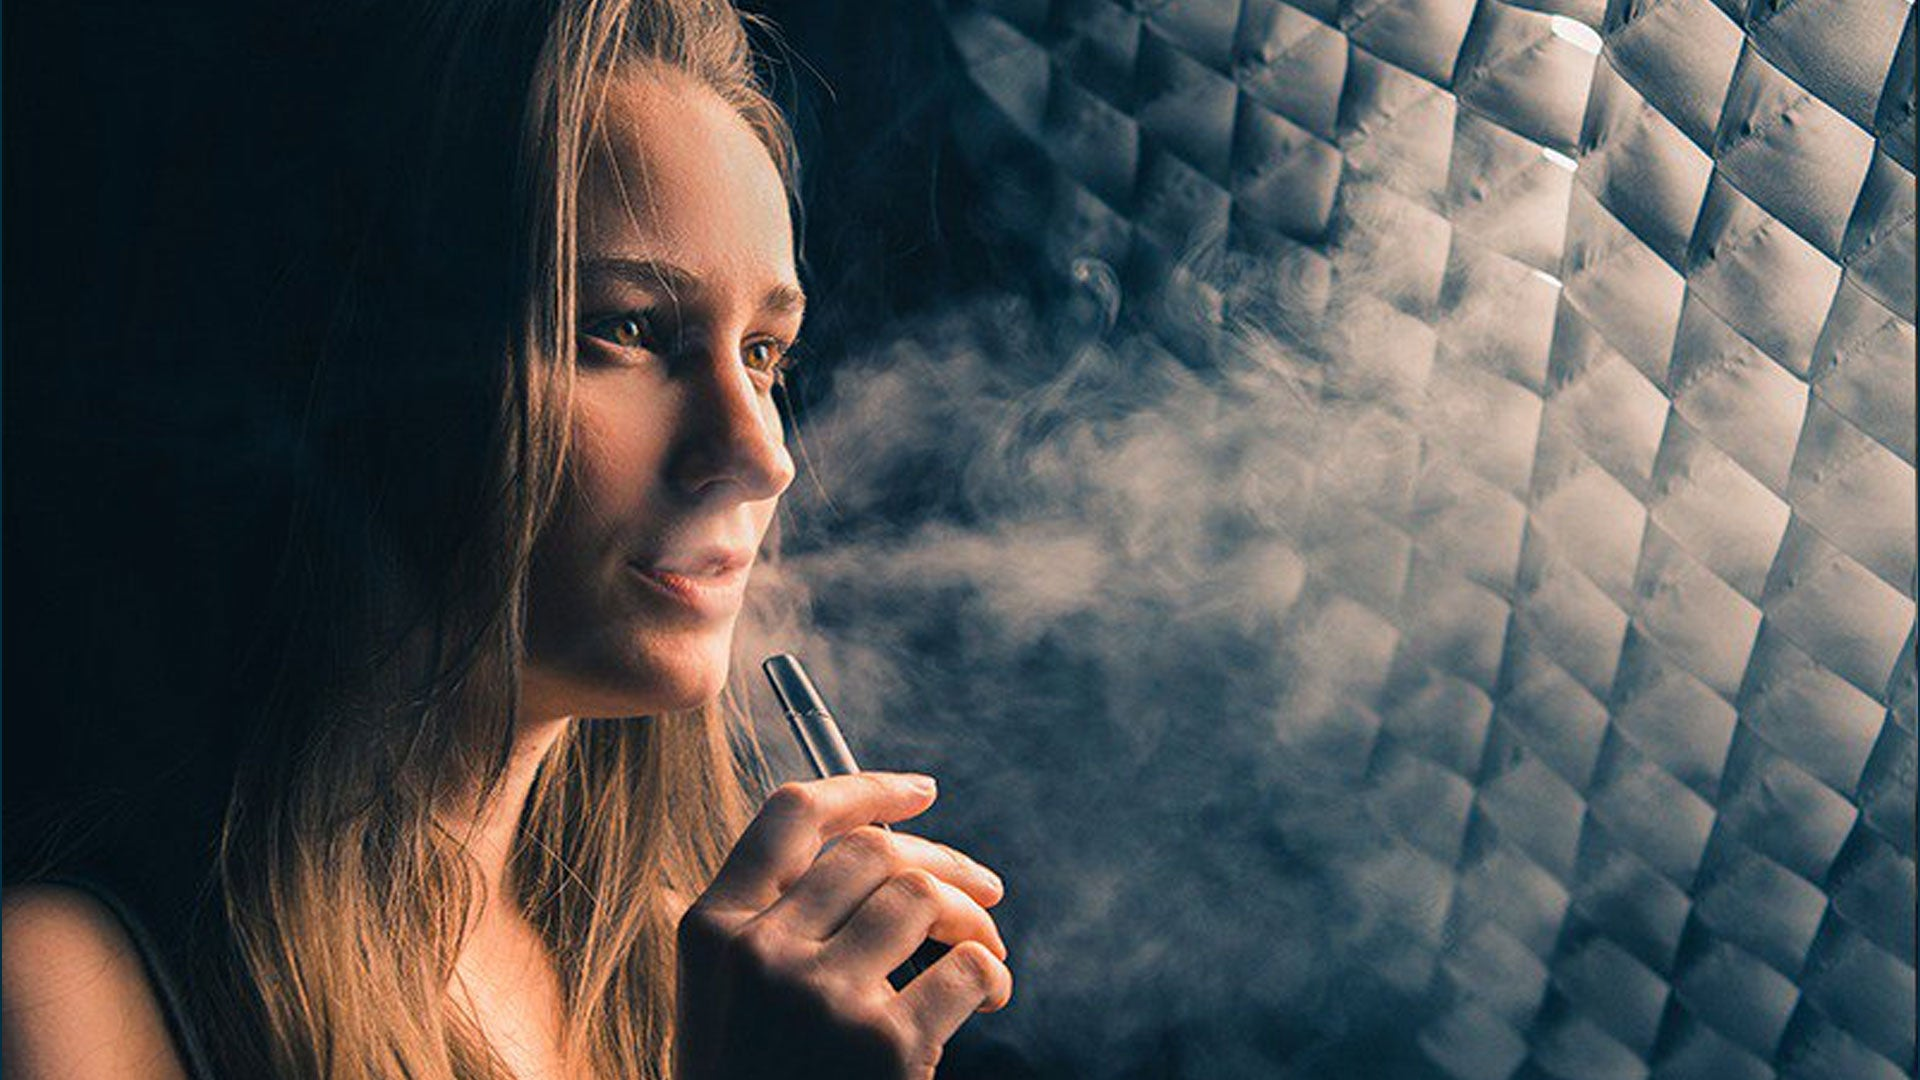 The Beginners Guide to CBD Vape Oil